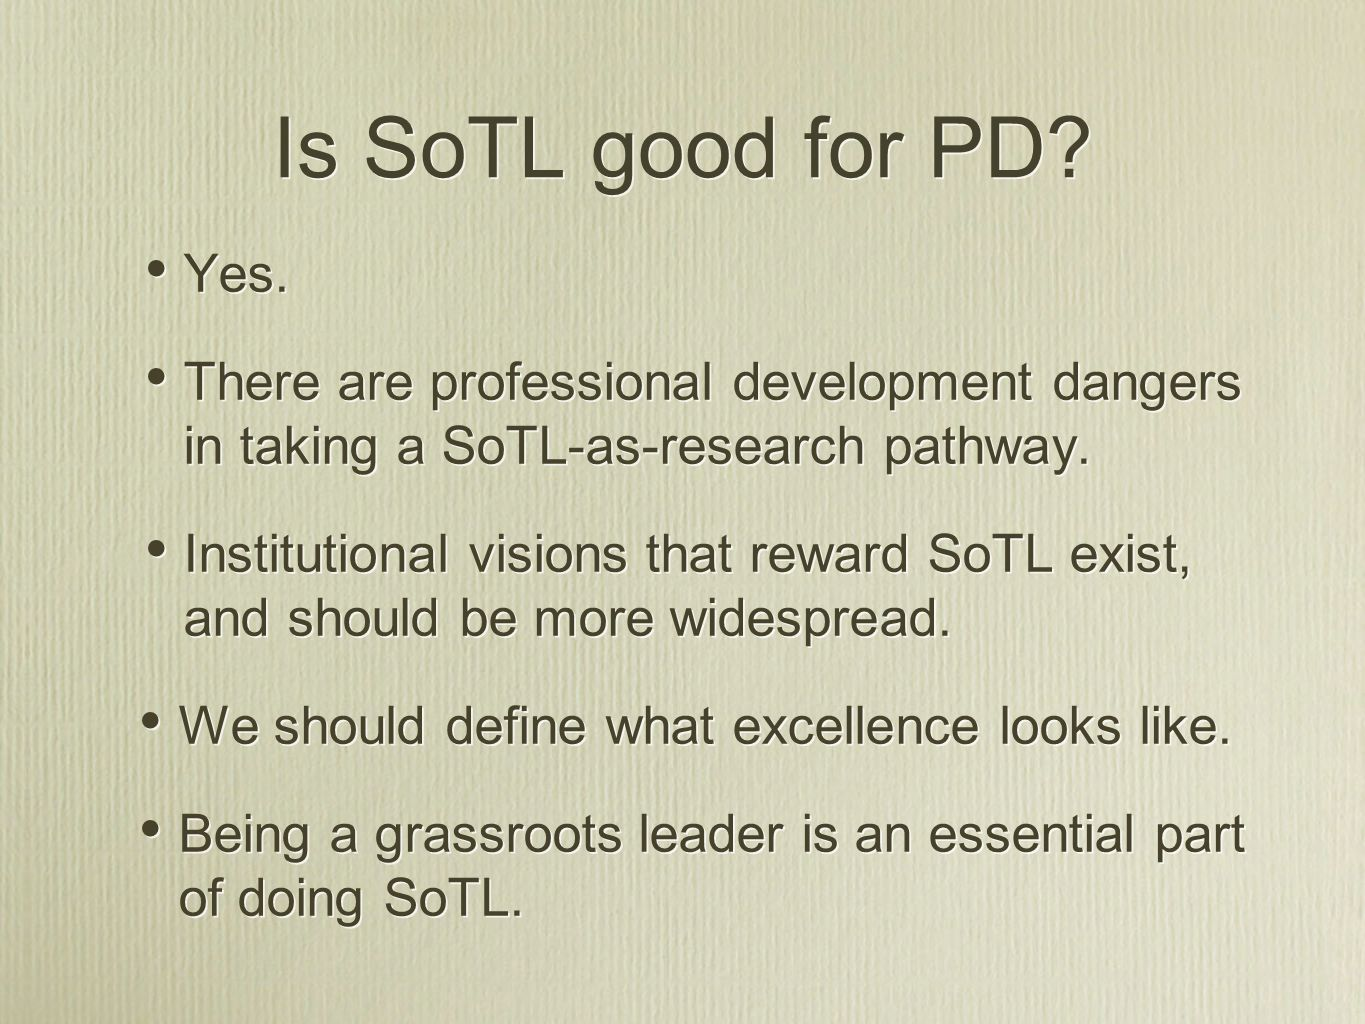 Yes. There are professional development dangers in taking a SoTL-as-research pathway. Institutional visions that reward SoTL exist, and should be more